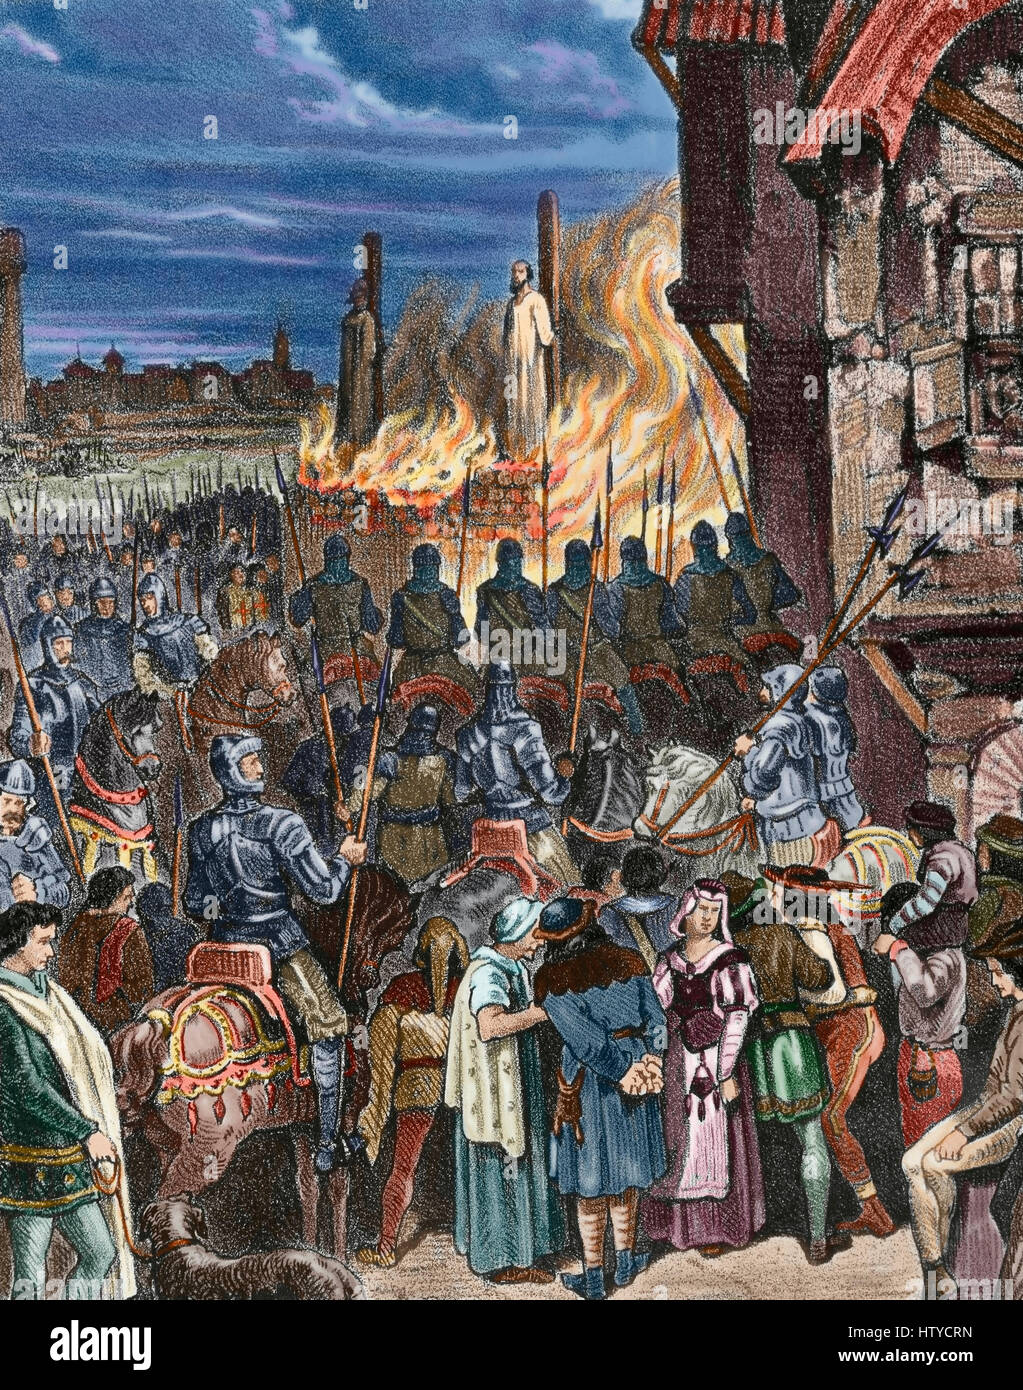 Burning of the Templars in France. Paris. Jacques de Molay (c.1240-1244-1314), Grand Master of the Order of the - Stock Image